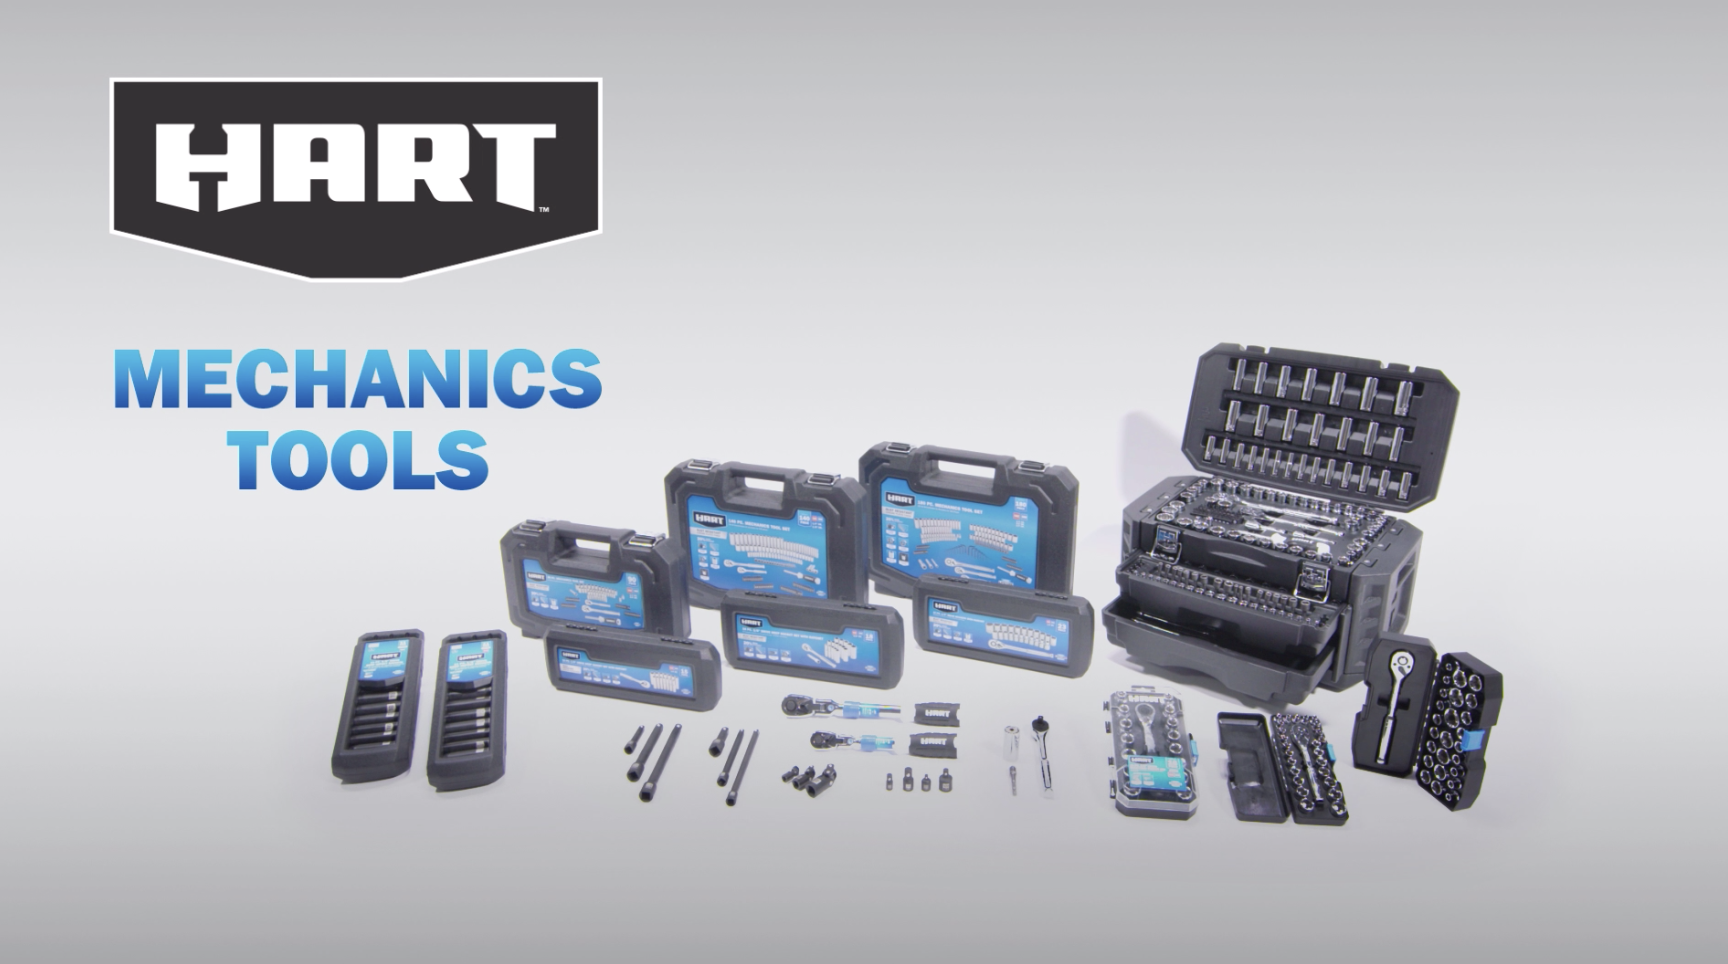 HART Mechanics Tools Sets